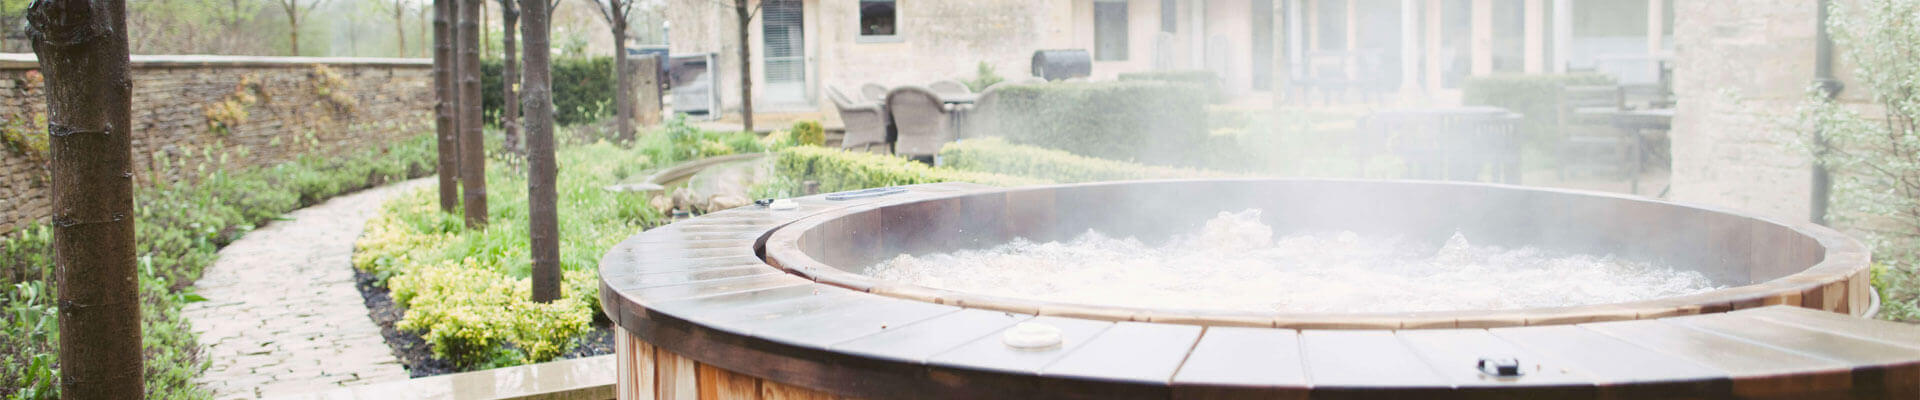 Photo of the hot tub at the Arisan Estate